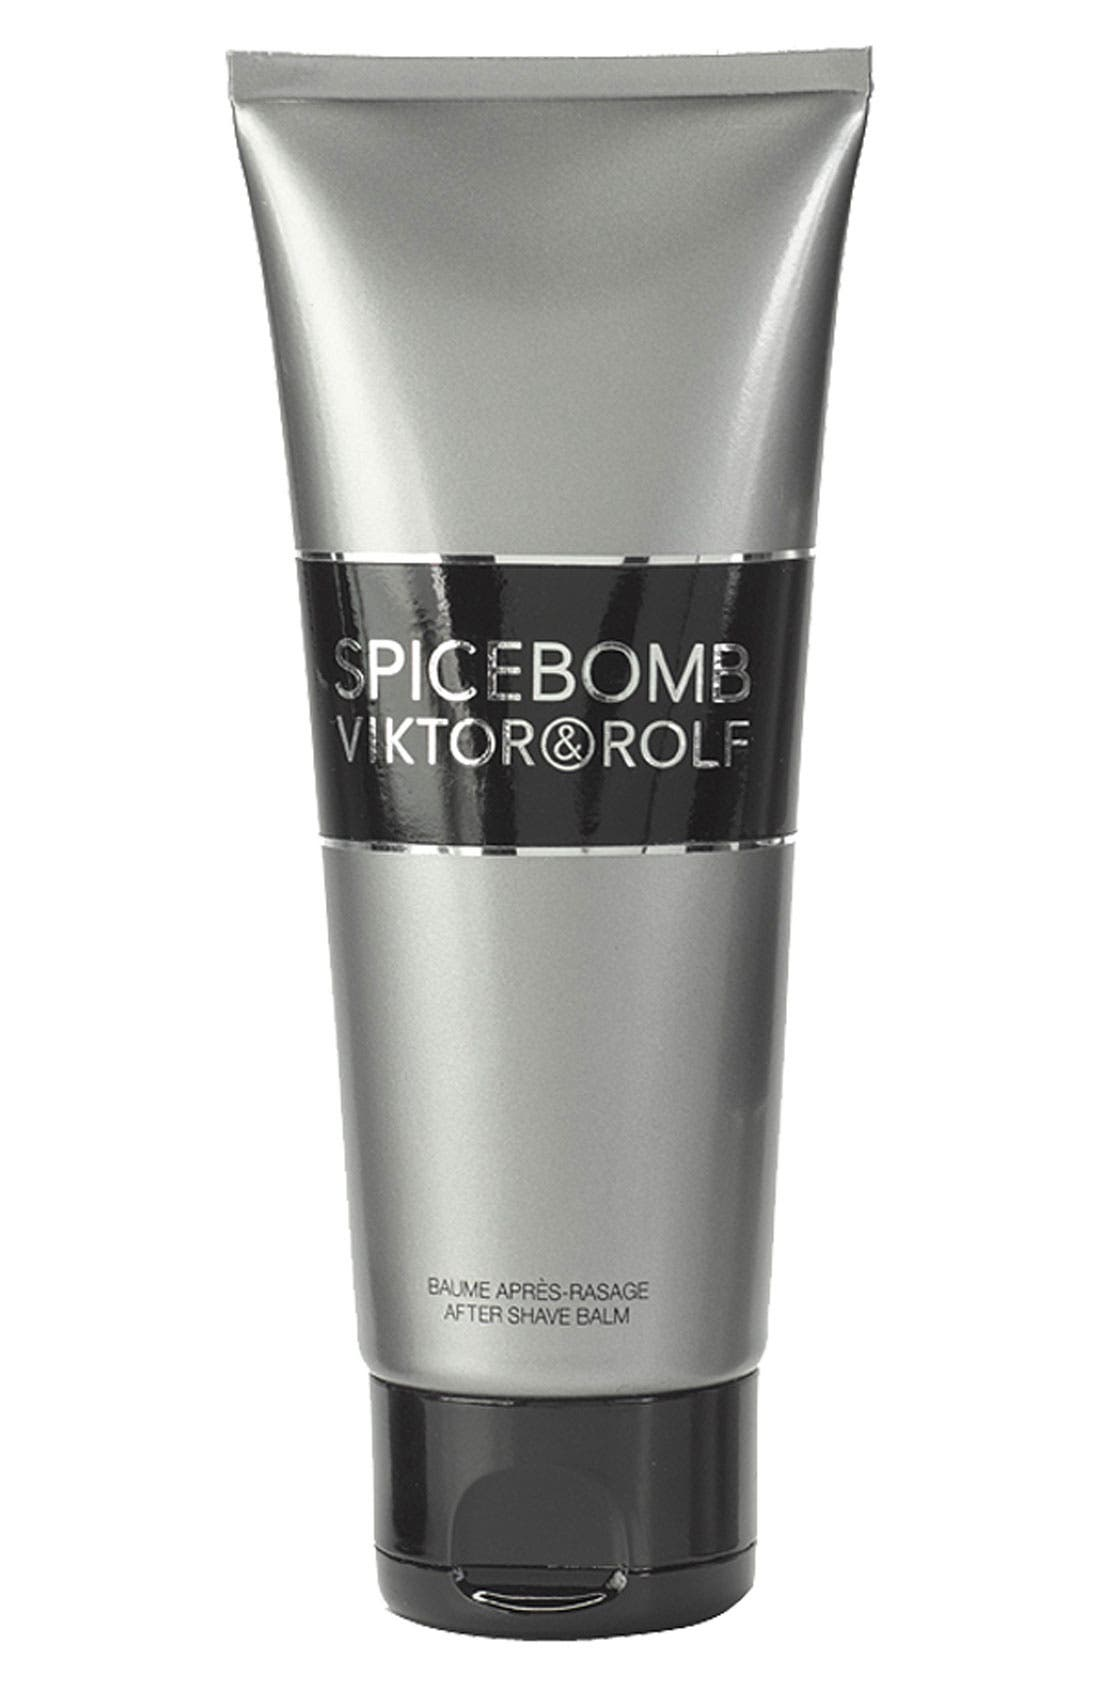 Viktor&Rolf 'Spicebomb' After-Shave Balm